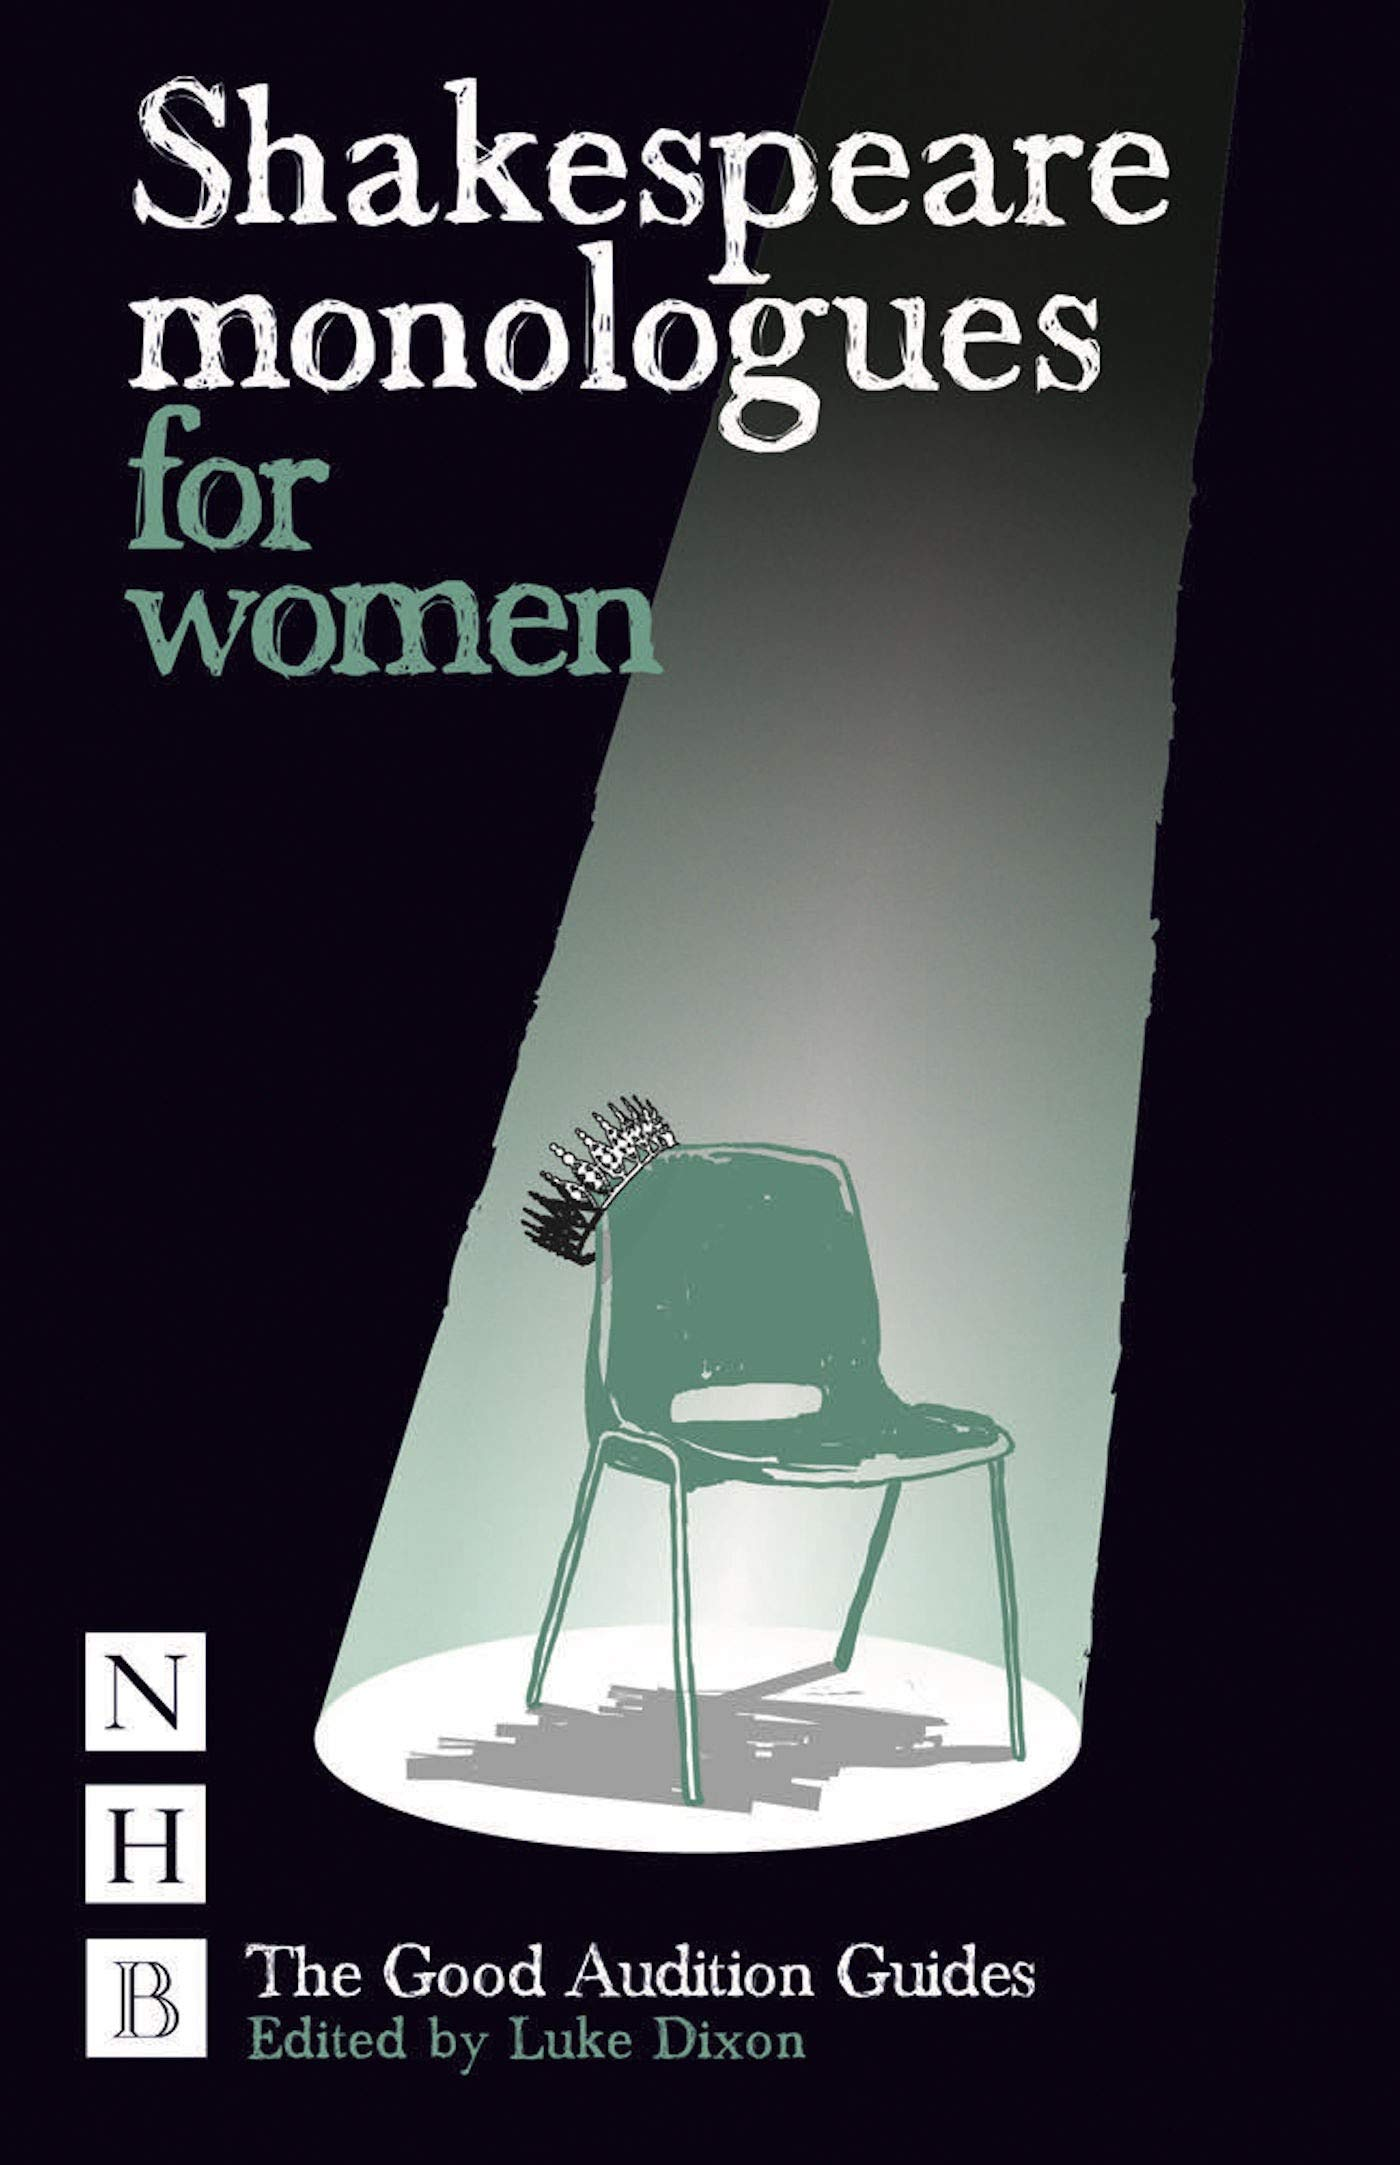 Shakespeare Monologues for Women NHB Good Audition Guides: Amazon.co.uk:  Luke Dixon: Books